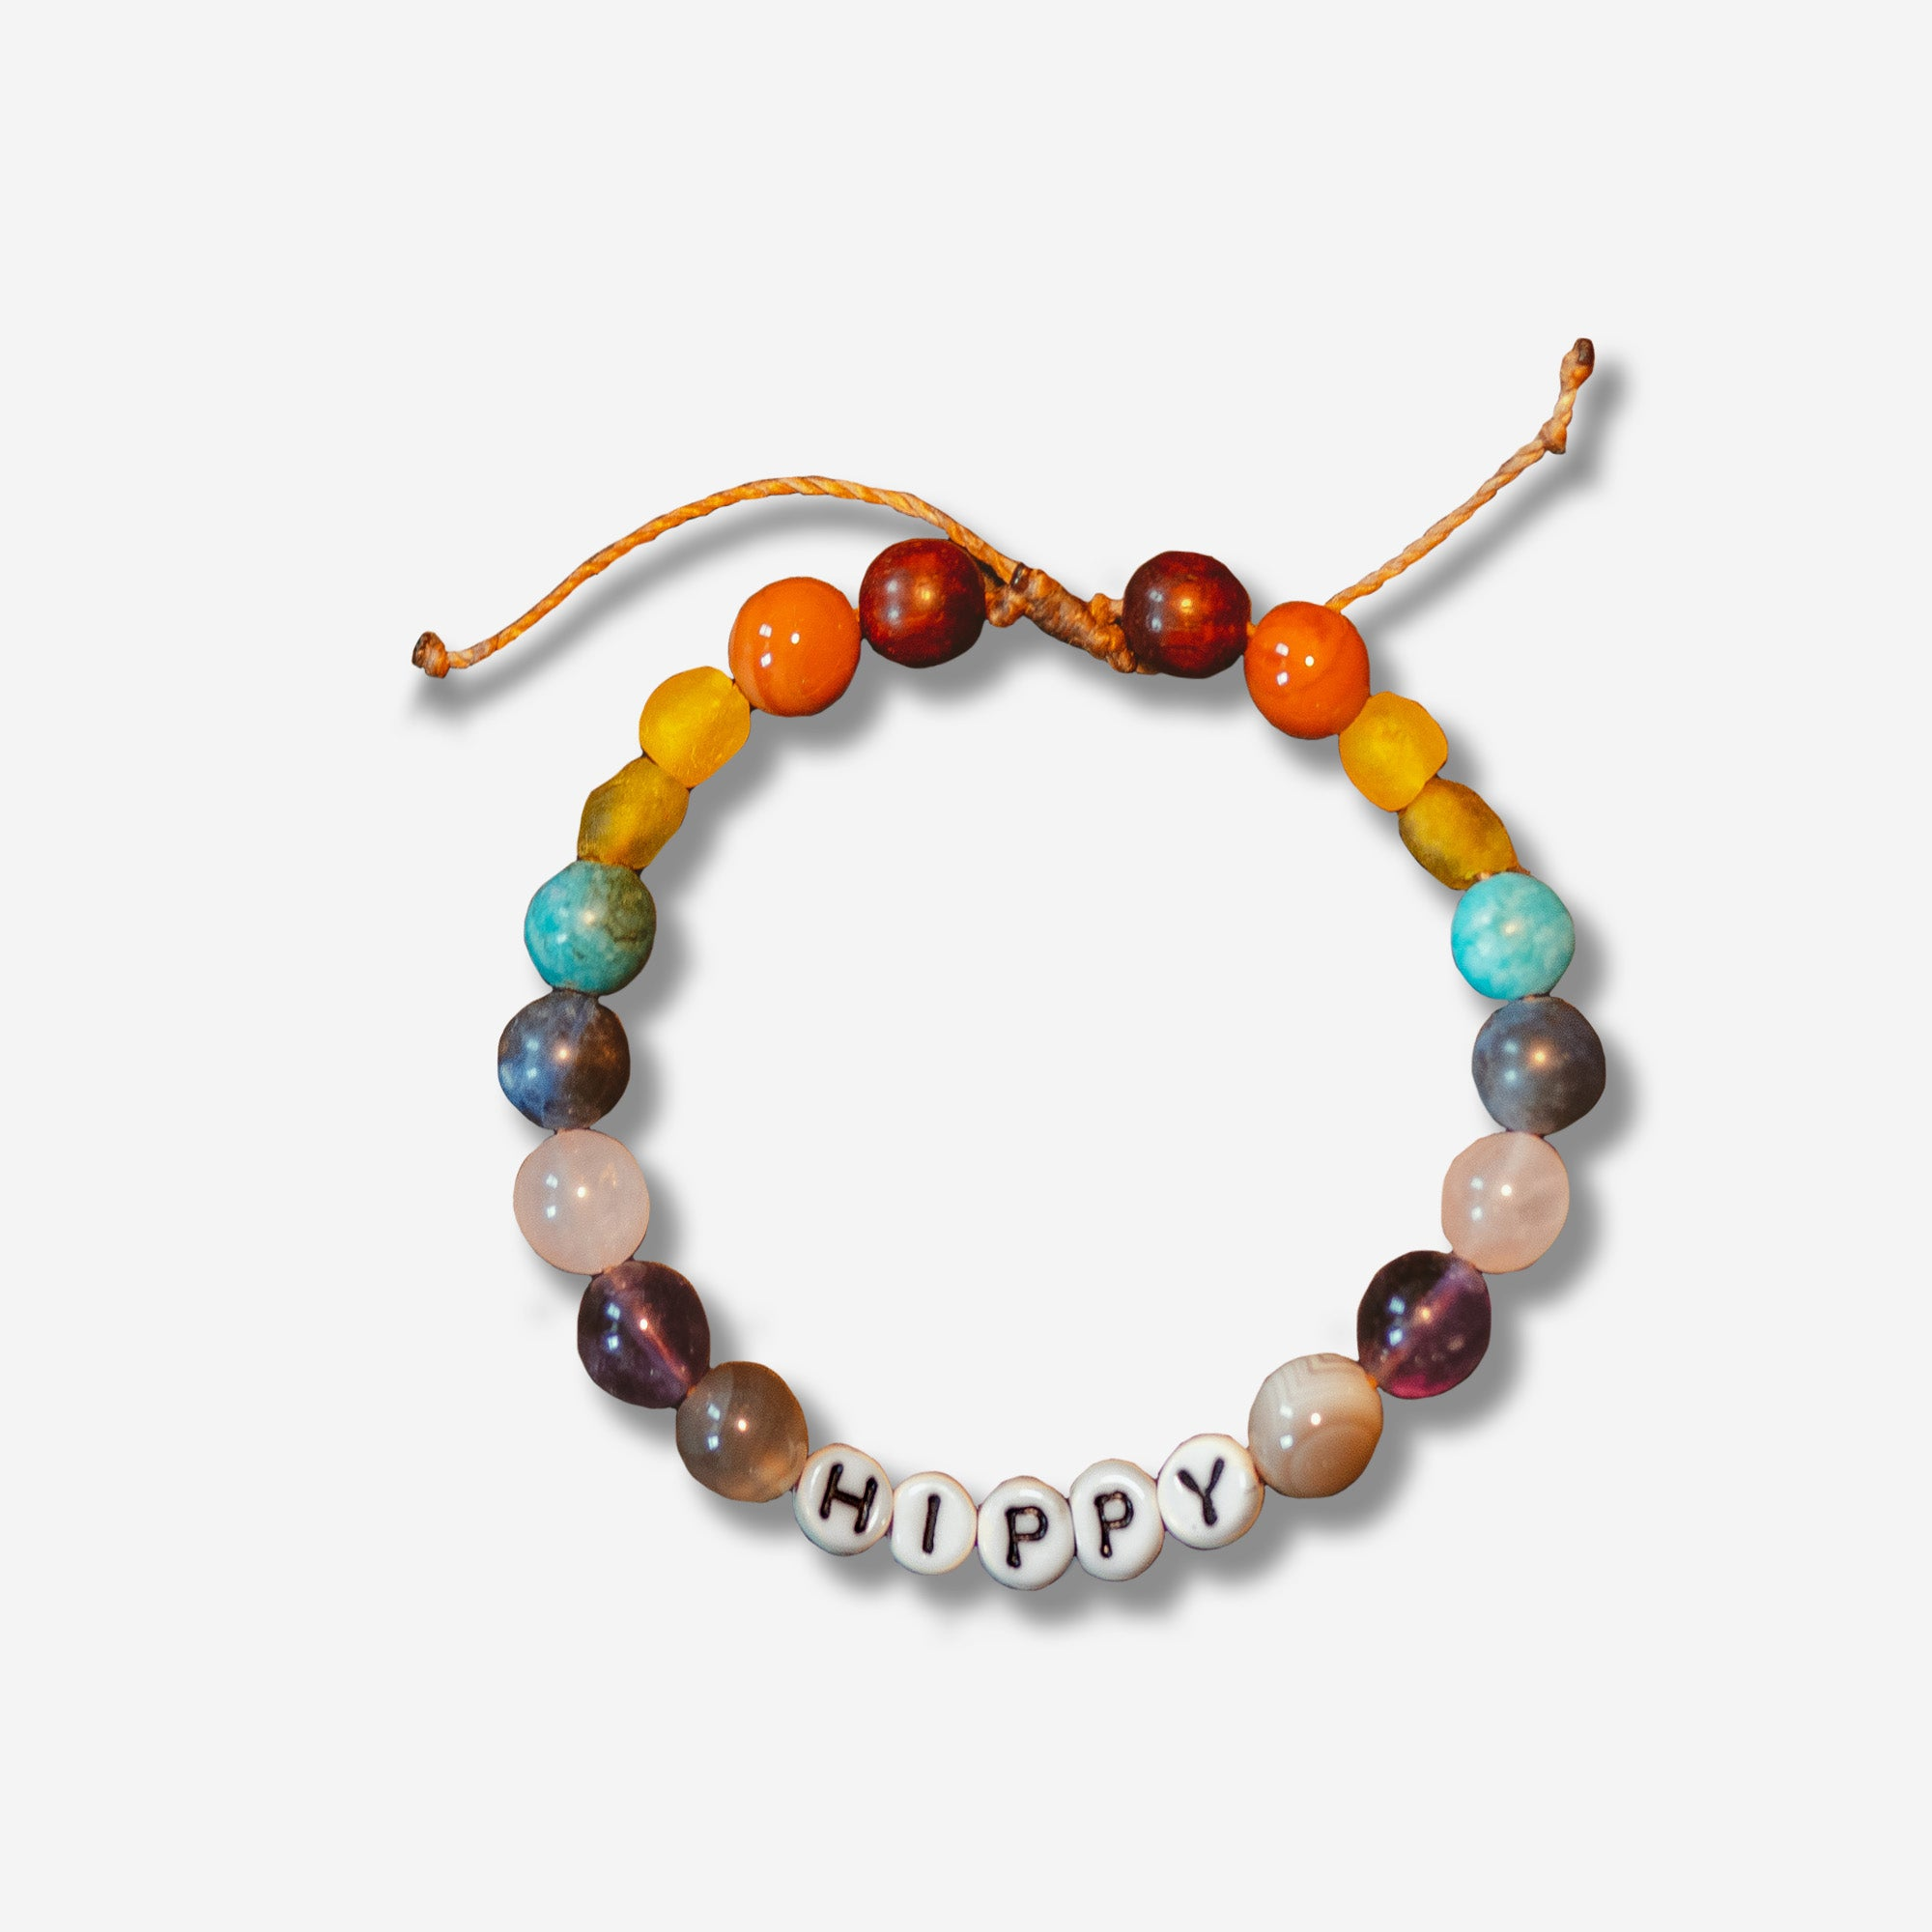 Hippy Feet Gemstone Friendship Bracelet